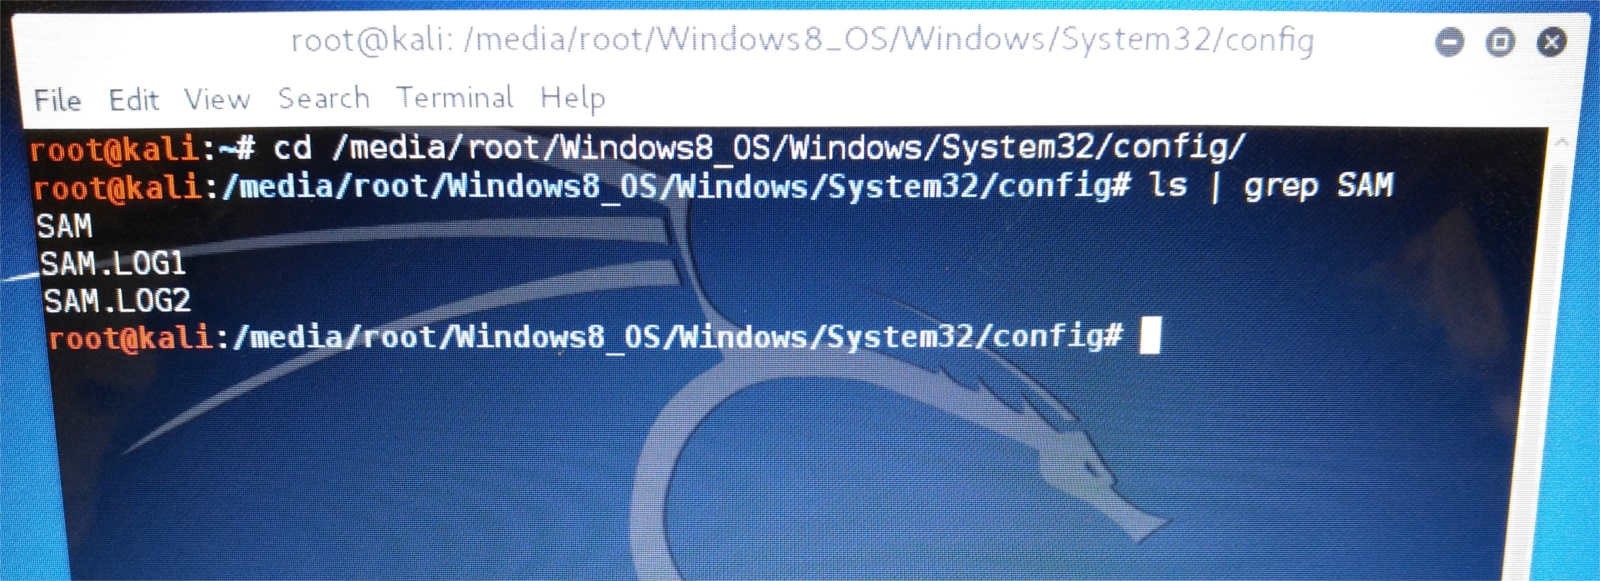 Gaining Administrator Access to a Password-Secured Windows 8